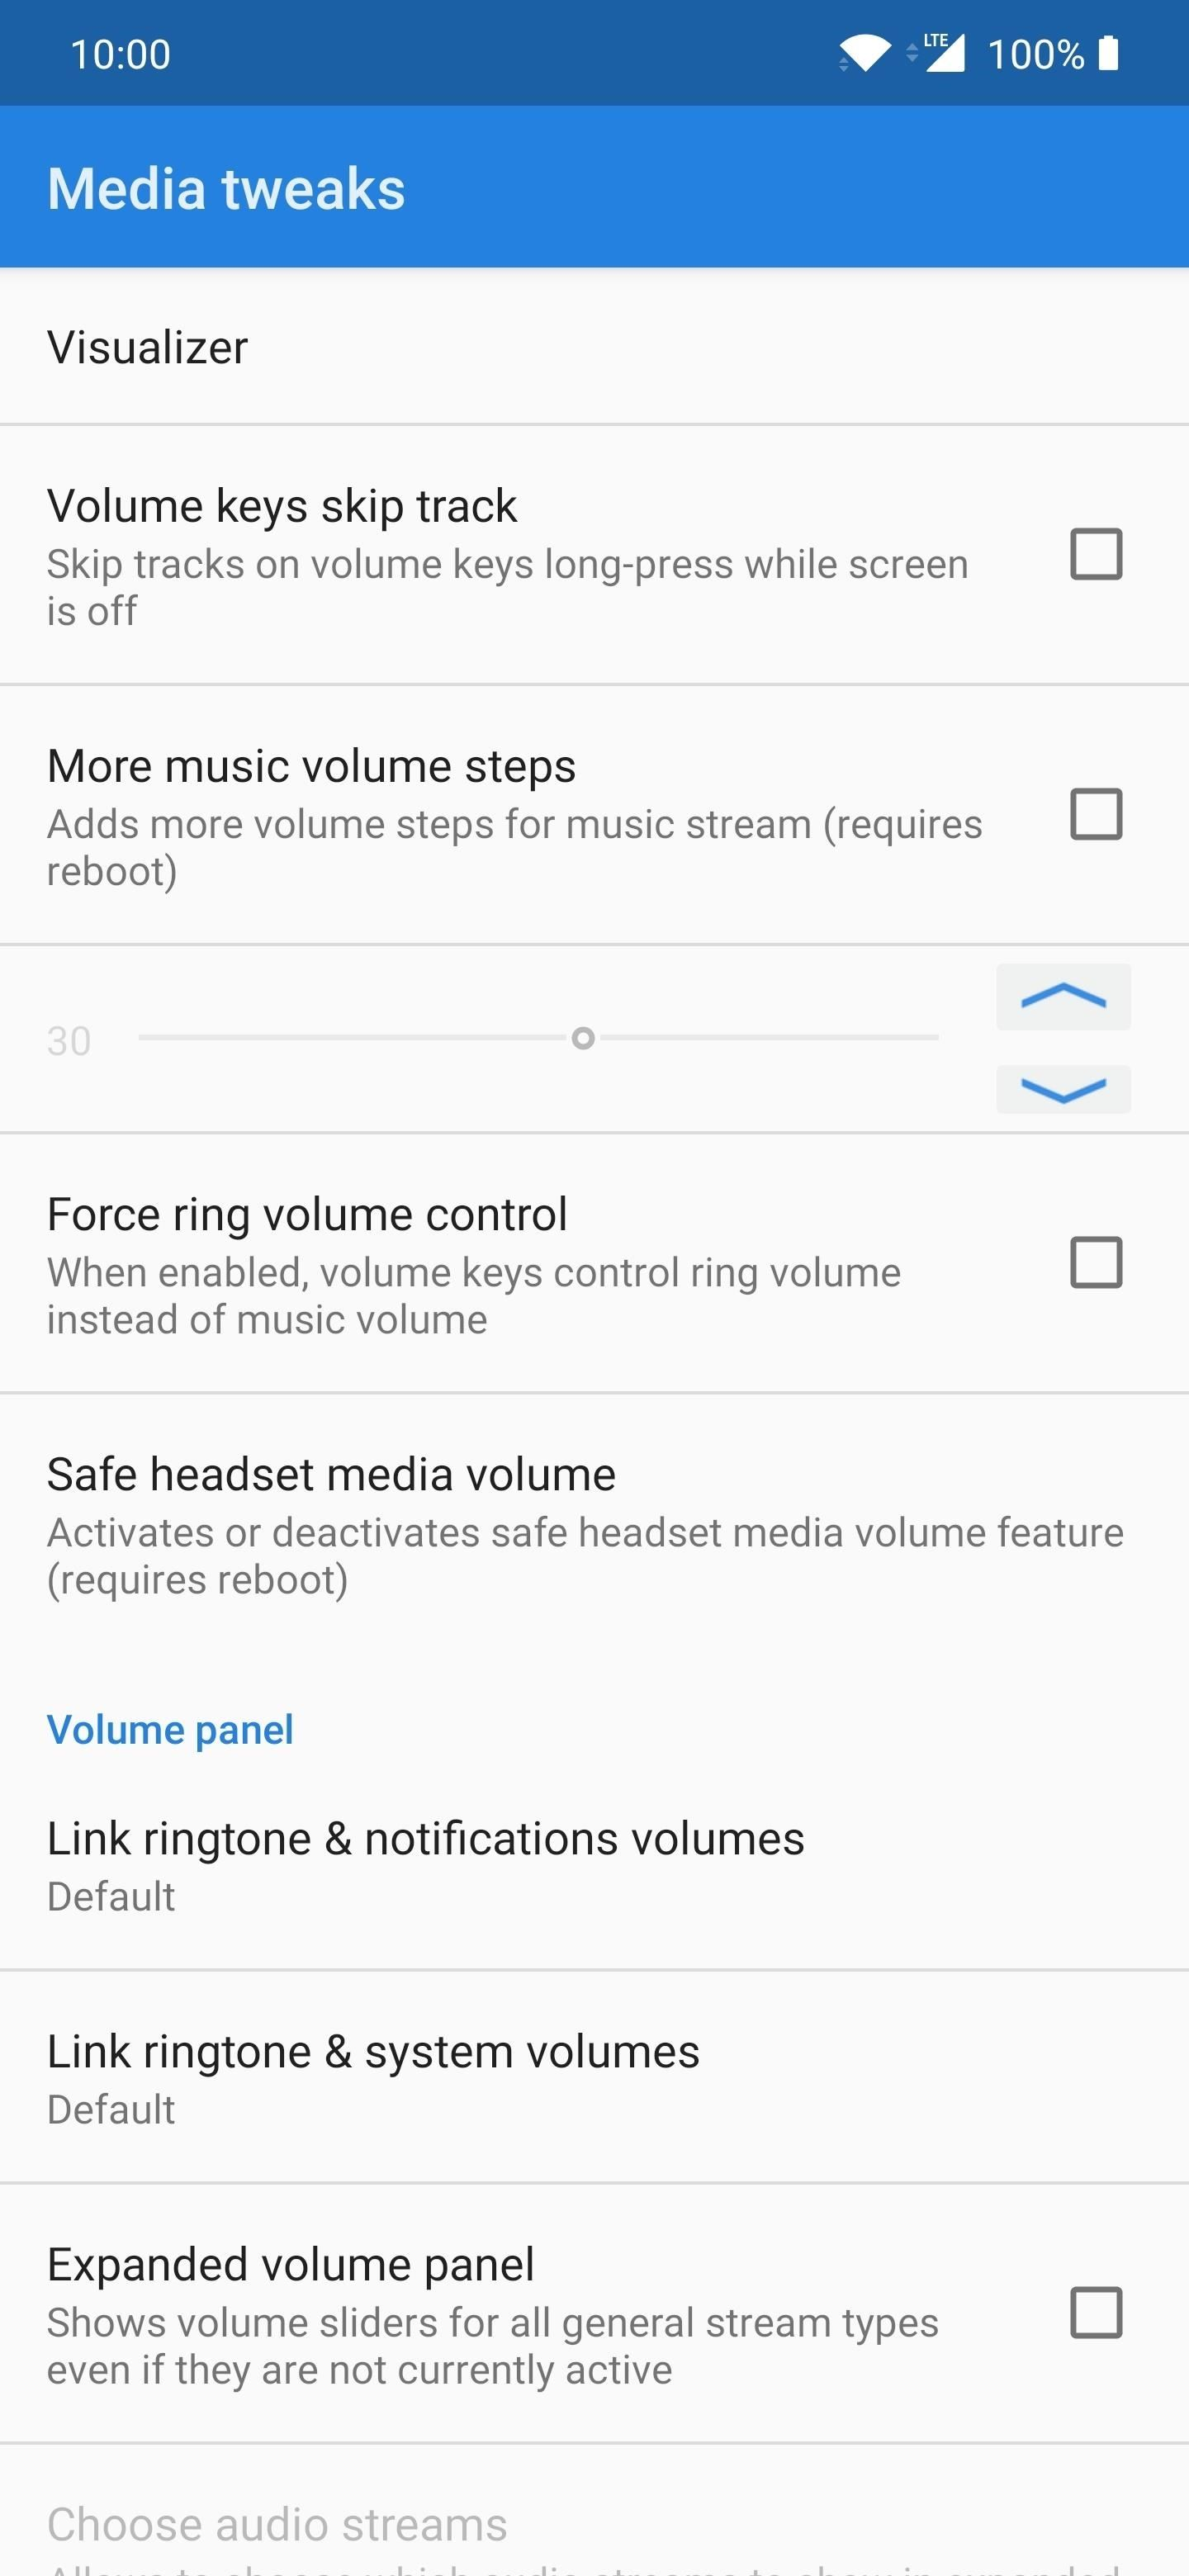 How to Install GravityBox on Android 10 for All the Customization Options You Could Ever Need